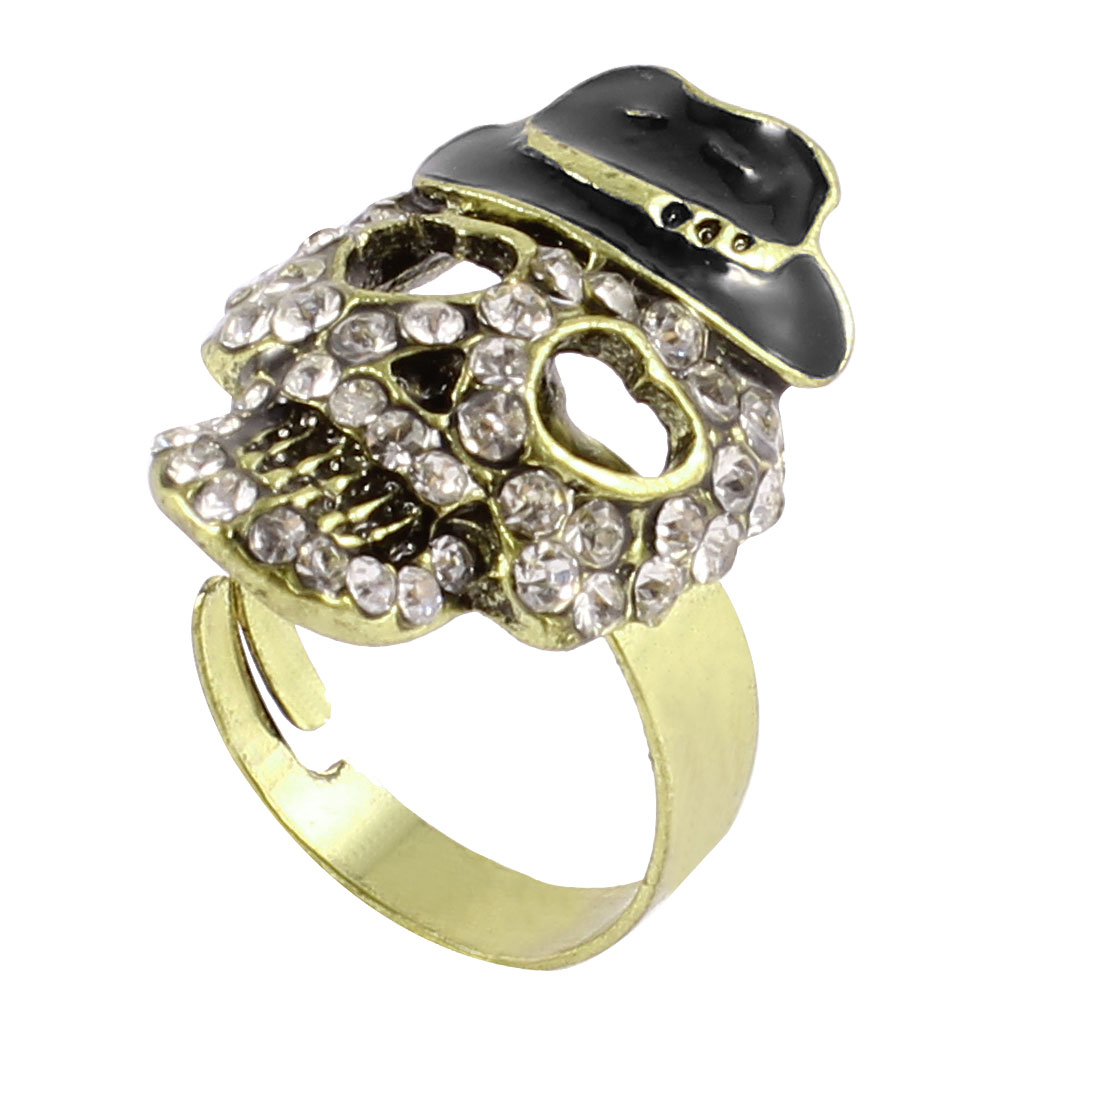 Ladies Fuax Rhinestone Accent Bronze Tone Skull Decor Metal Finger Ring US 6 1/2